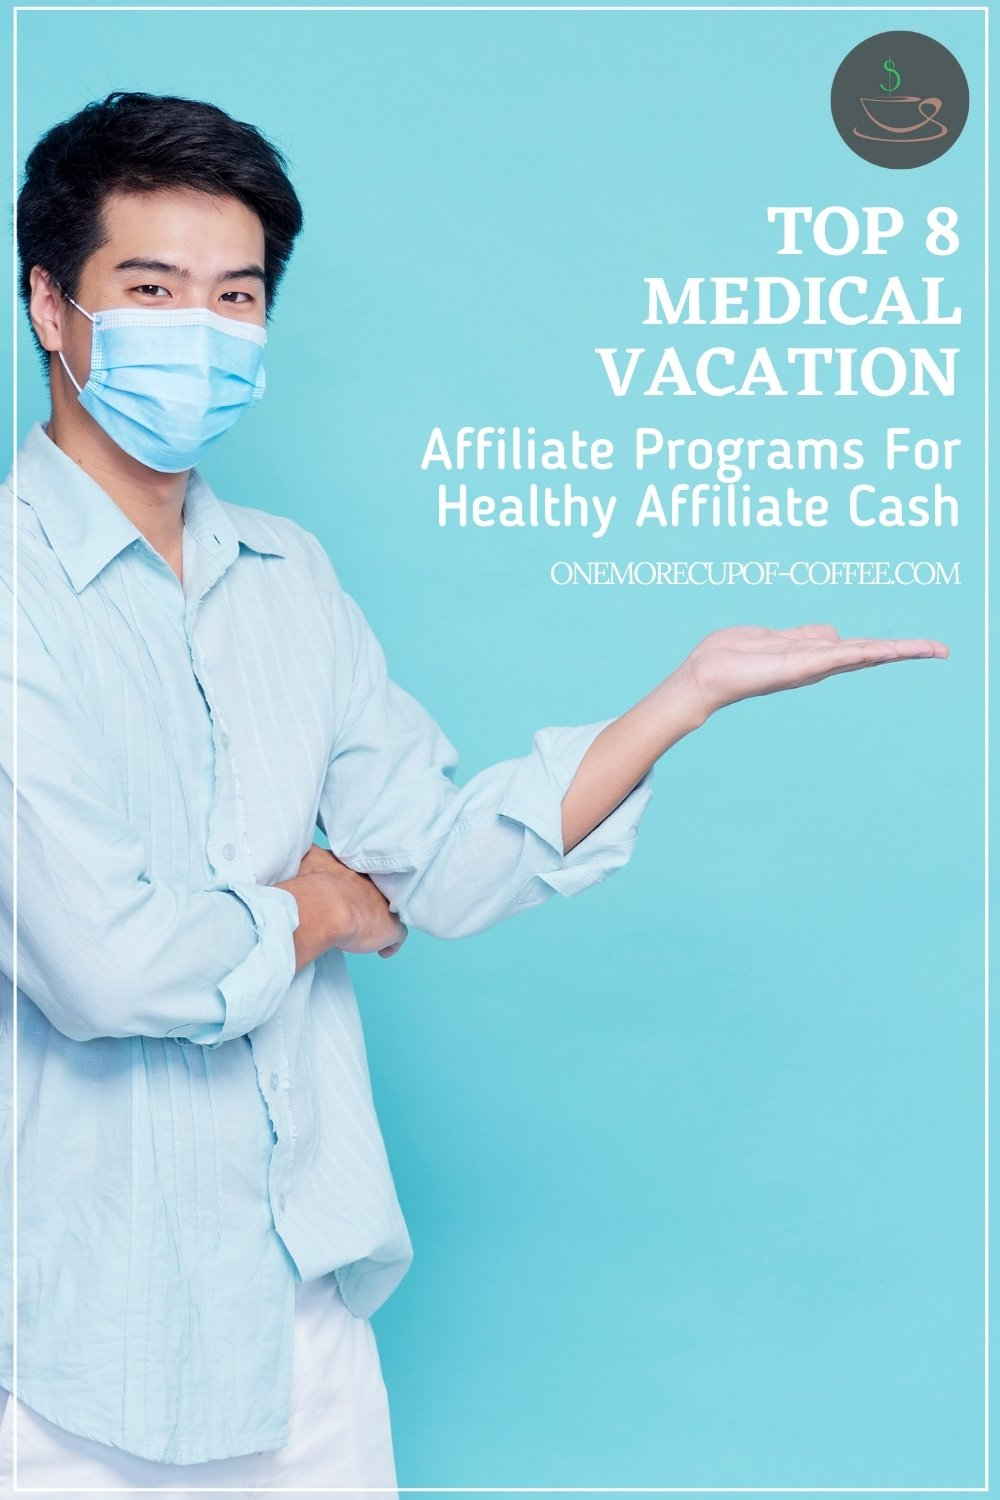 """man wearing a disposable medical mask, light blue long-sleeves shirt, and white pants; with text overlay """"Top 8 Medical Vacation Affiliate Programs For Healthy Affiliate Cash"""""""